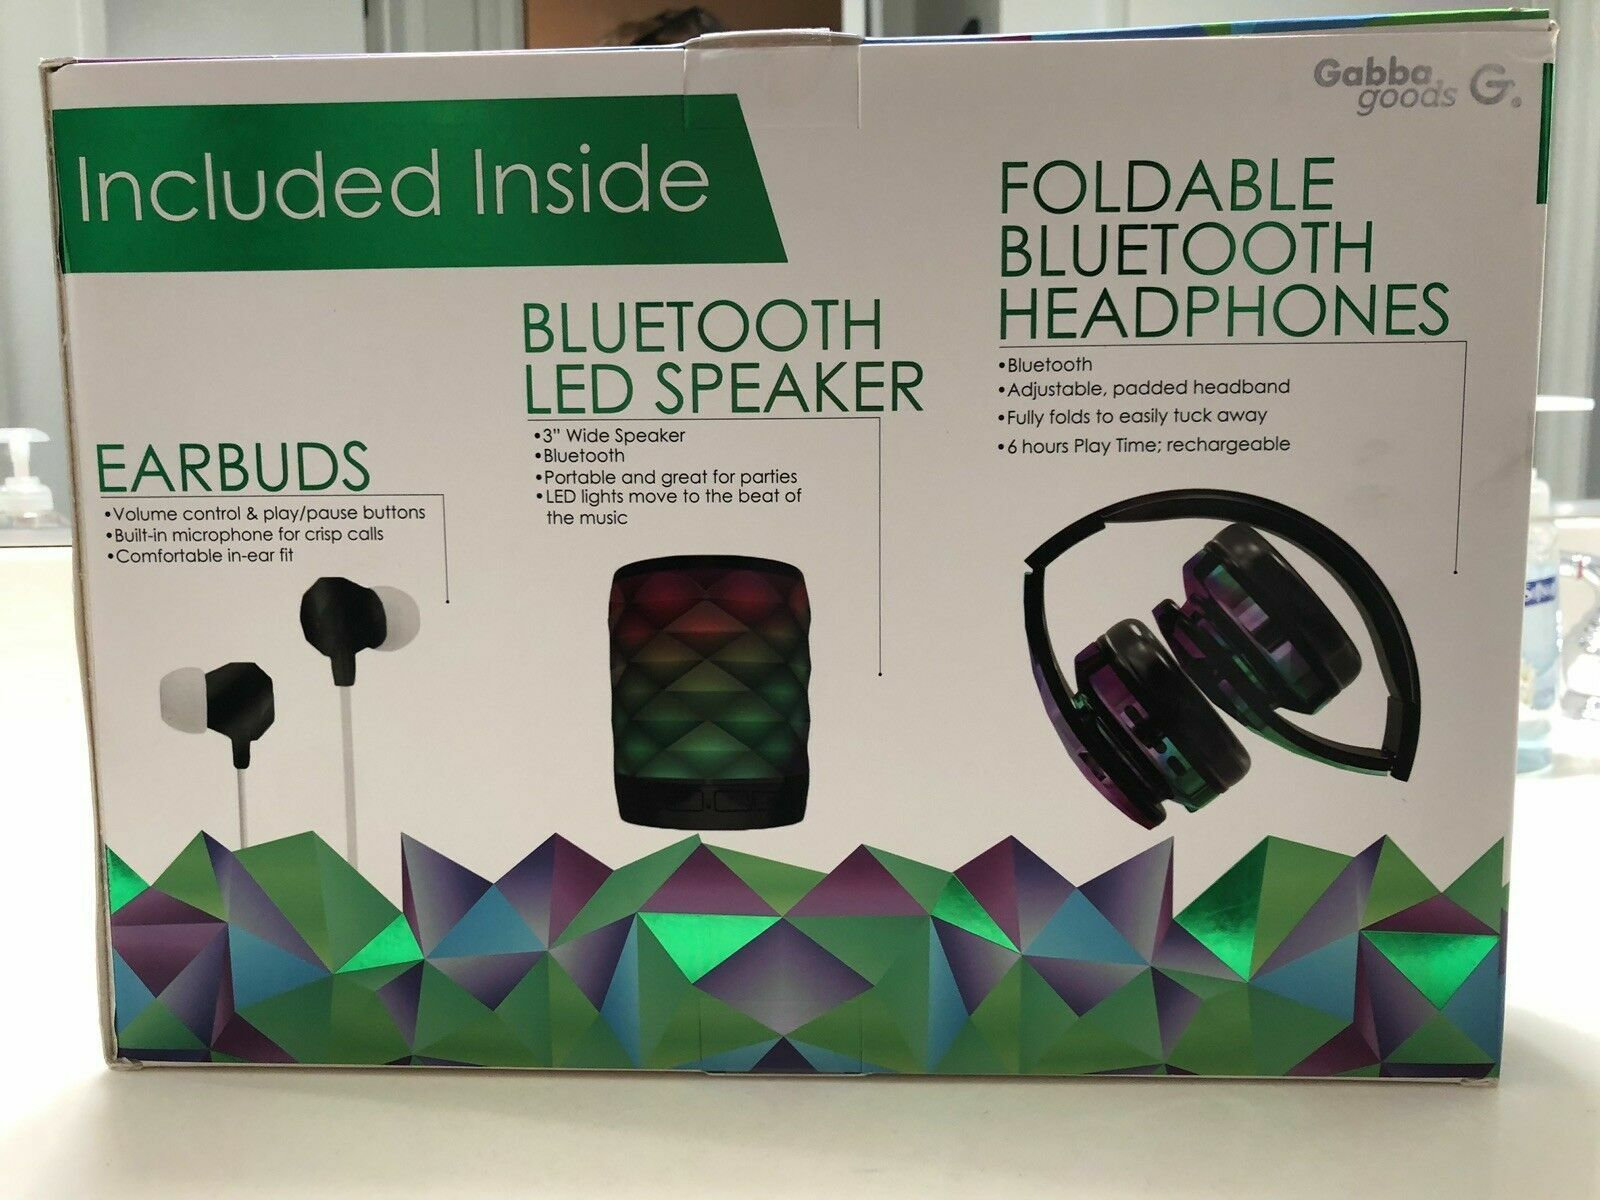 Gabba Goods Foldable Bluetooth Headphones With Bluetooth LED